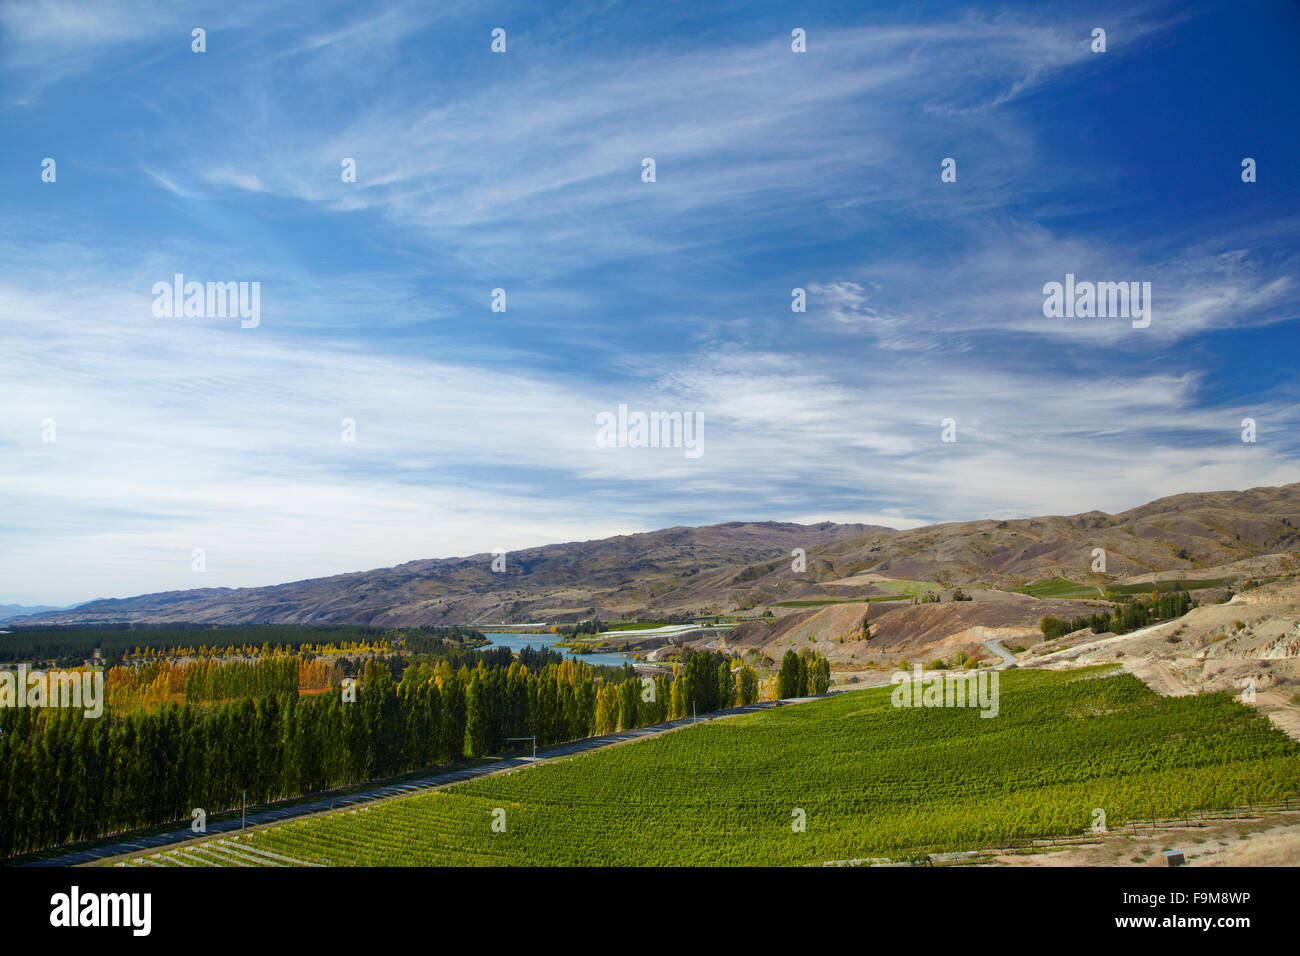 Mt Difficulty Vineyards and orchards, Bannockburn, near Cromwell, Central Otago, South Island, New Zealand - Stock Image